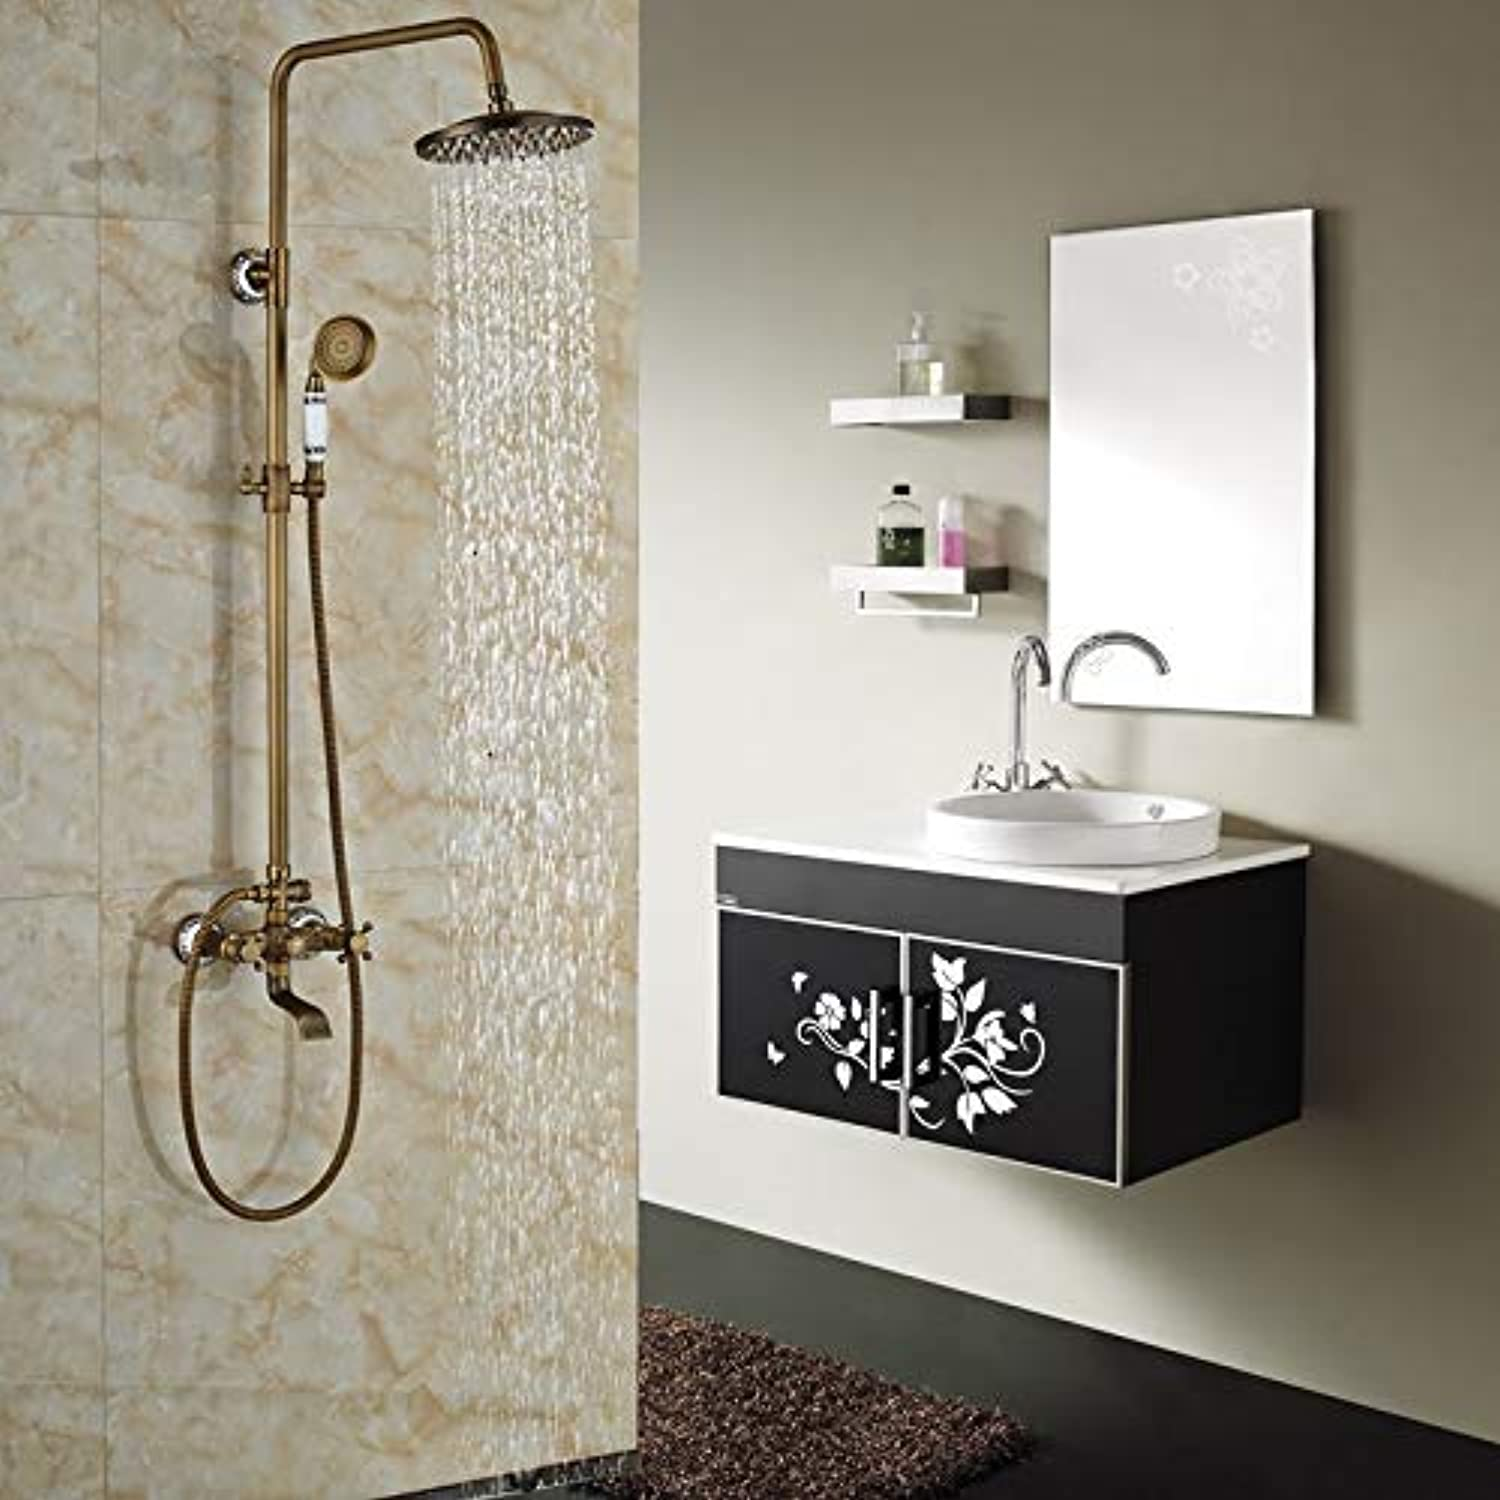 SISHUINIANHUA In-Wall Outdoor 8 Regendusche Set Badewanne und Dusche Mischbatterie Dual Griffe Antique Brass Finish